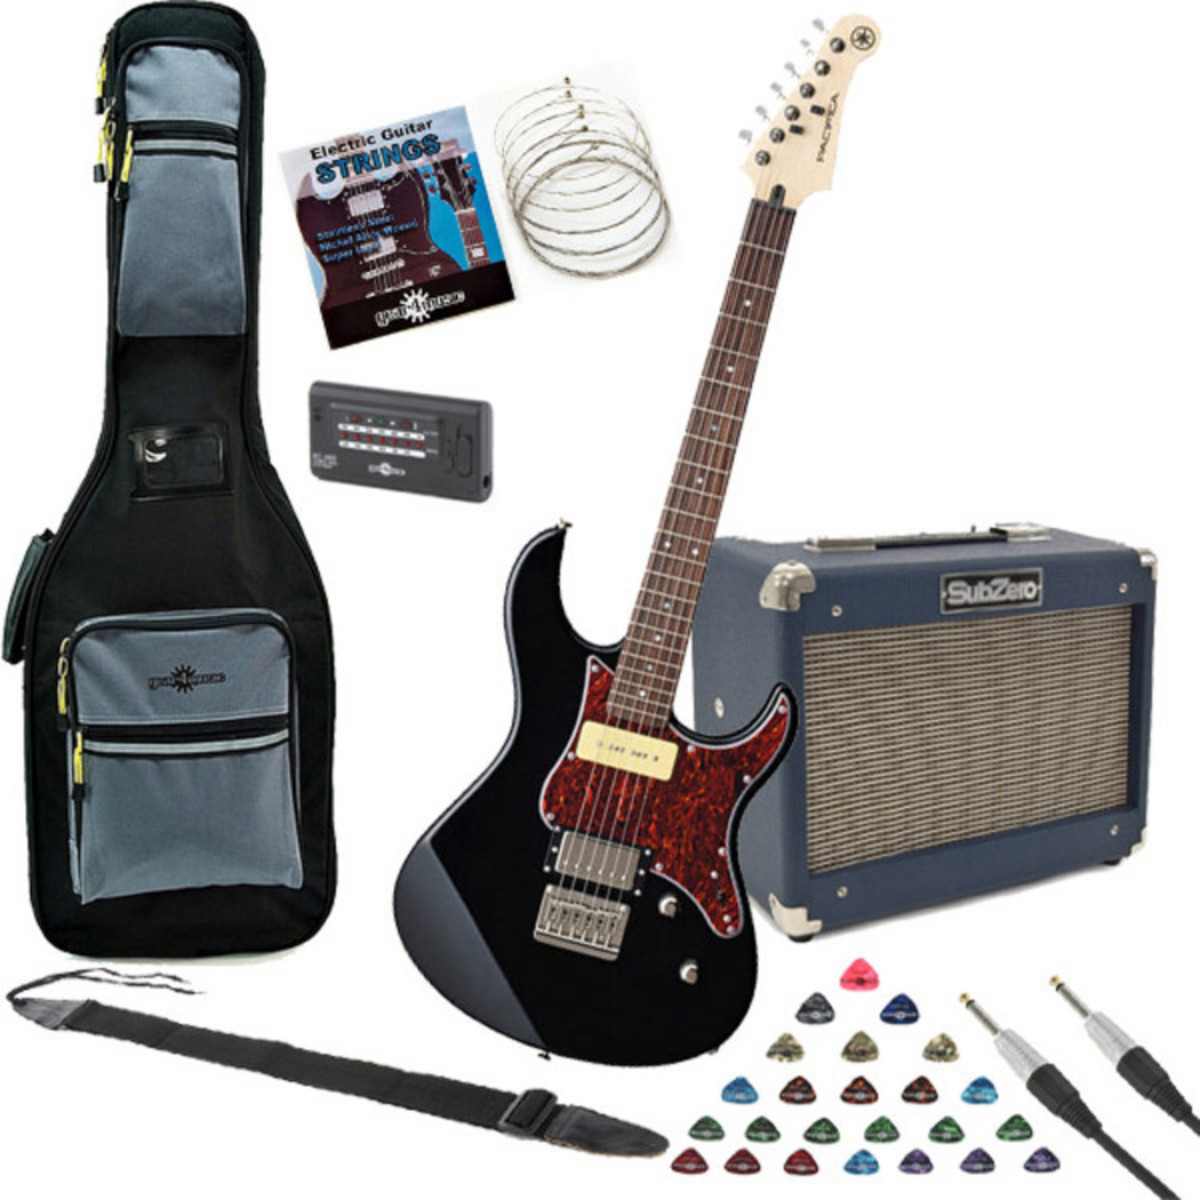 yamaha pacifica 311h electric guitar black with subzero 10w amp pack at gear4music. Black Bedroom Furniture Sets. Home Design Ideas